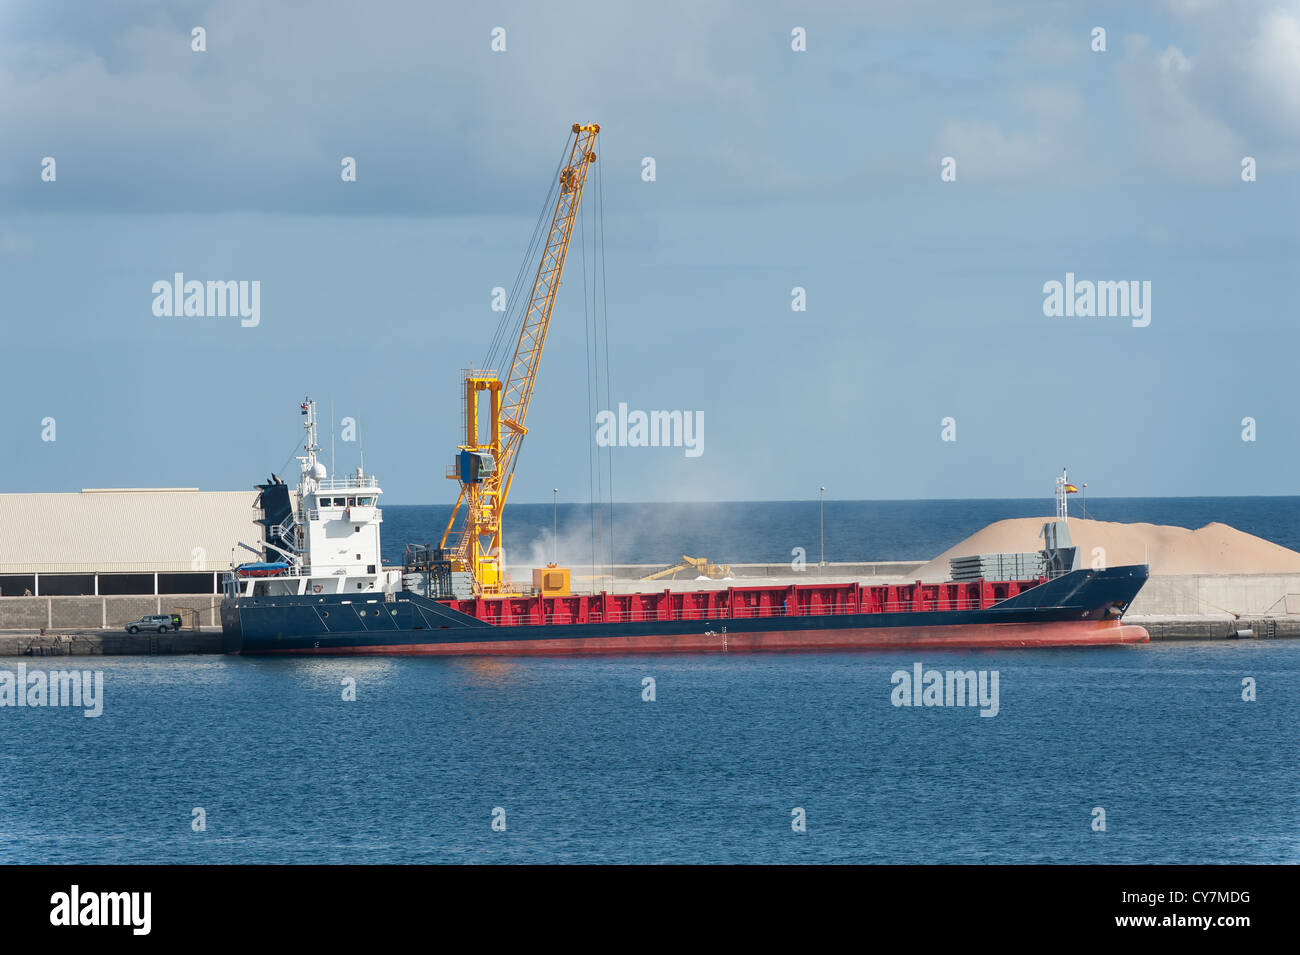 Boat being loaded with bulk cargo in the harbor of Las Palmas - Stock Image